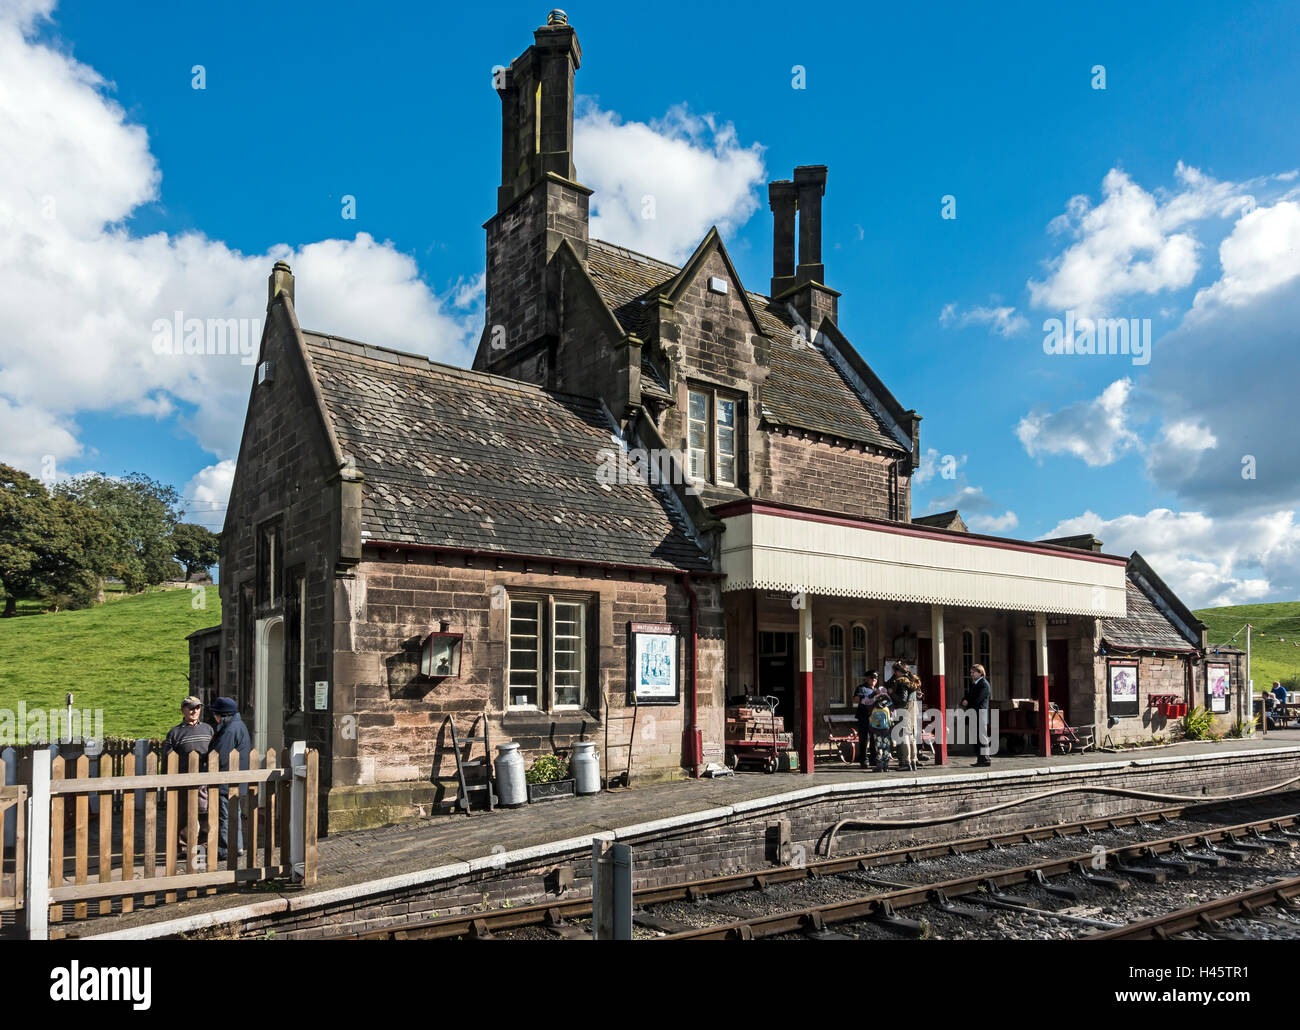 Railway Station in Cheddleton at the Churnet Valley Railway in Staffordshire England - Stock Image